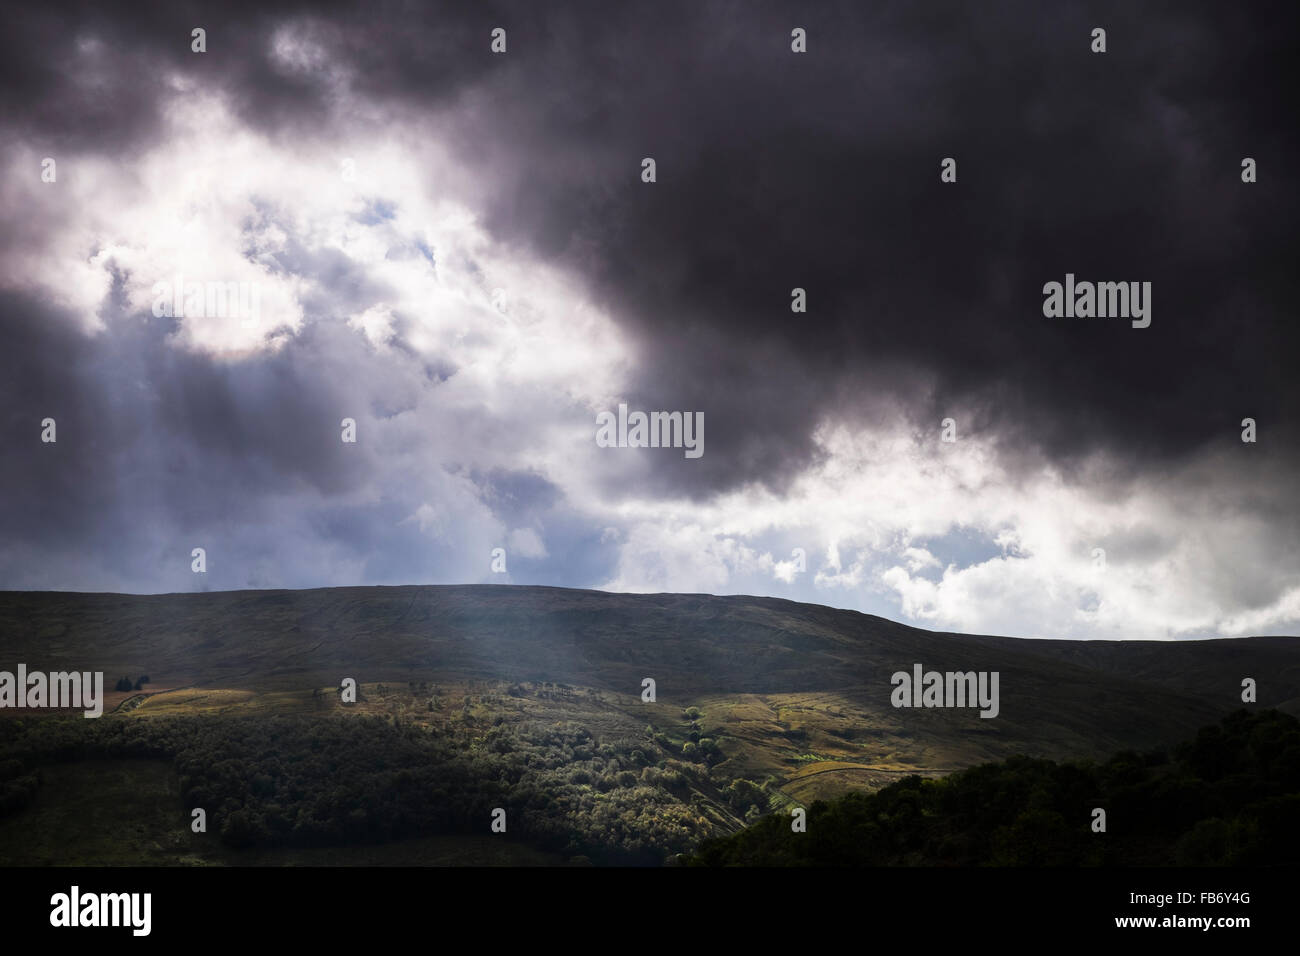 Stormy light over Wharfdale near Buckden, Yorkshire Dales National Park, England - Stock Image